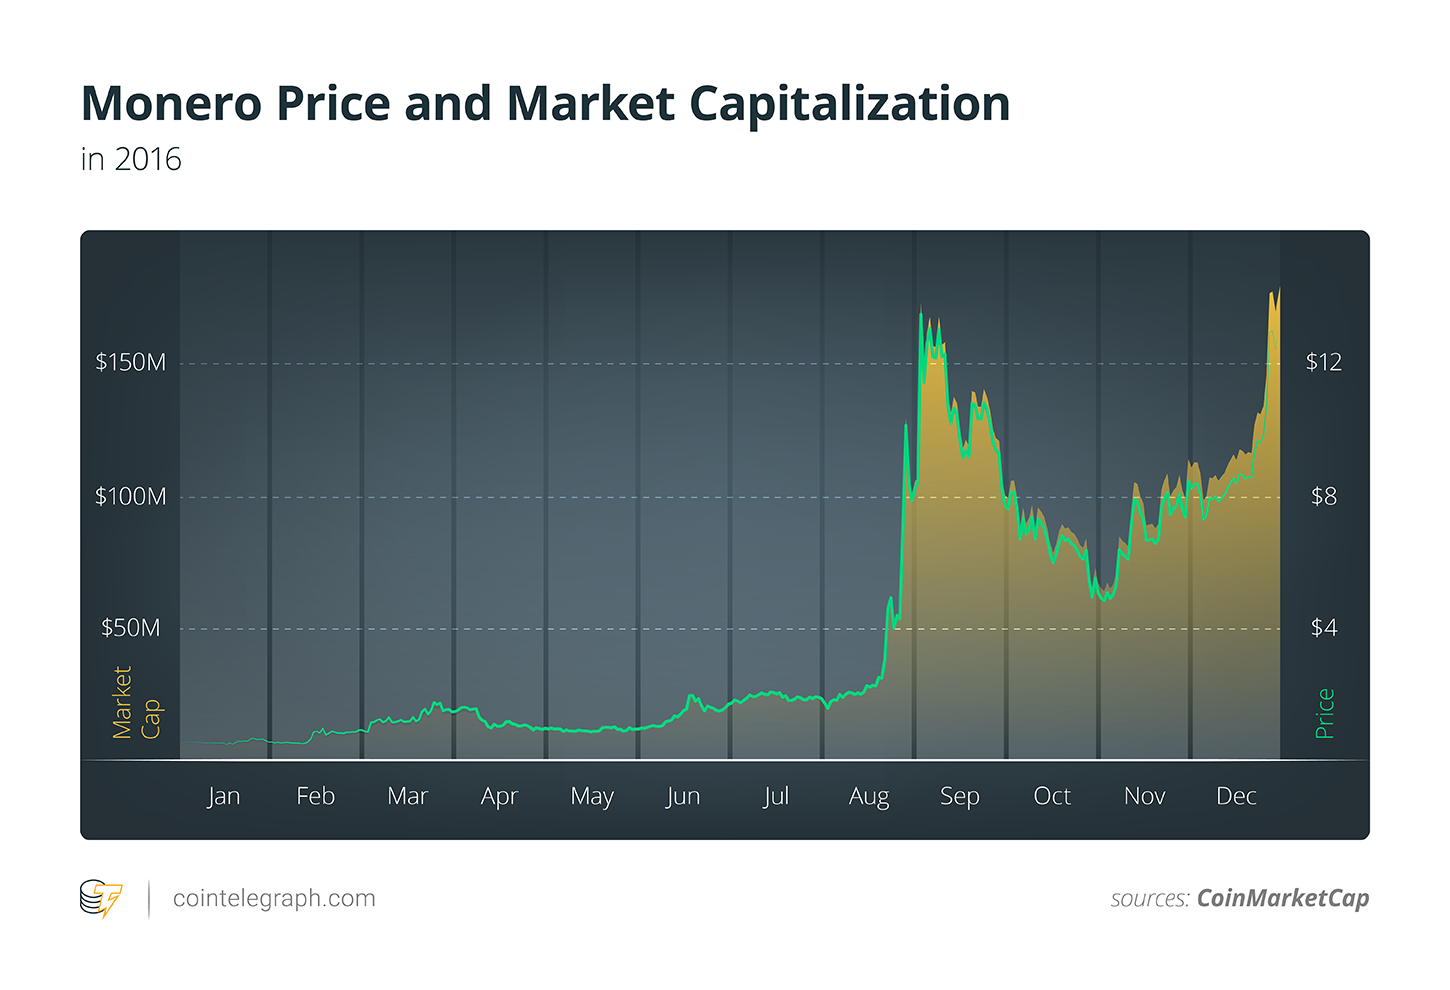 Monero Price and Market Capitalization